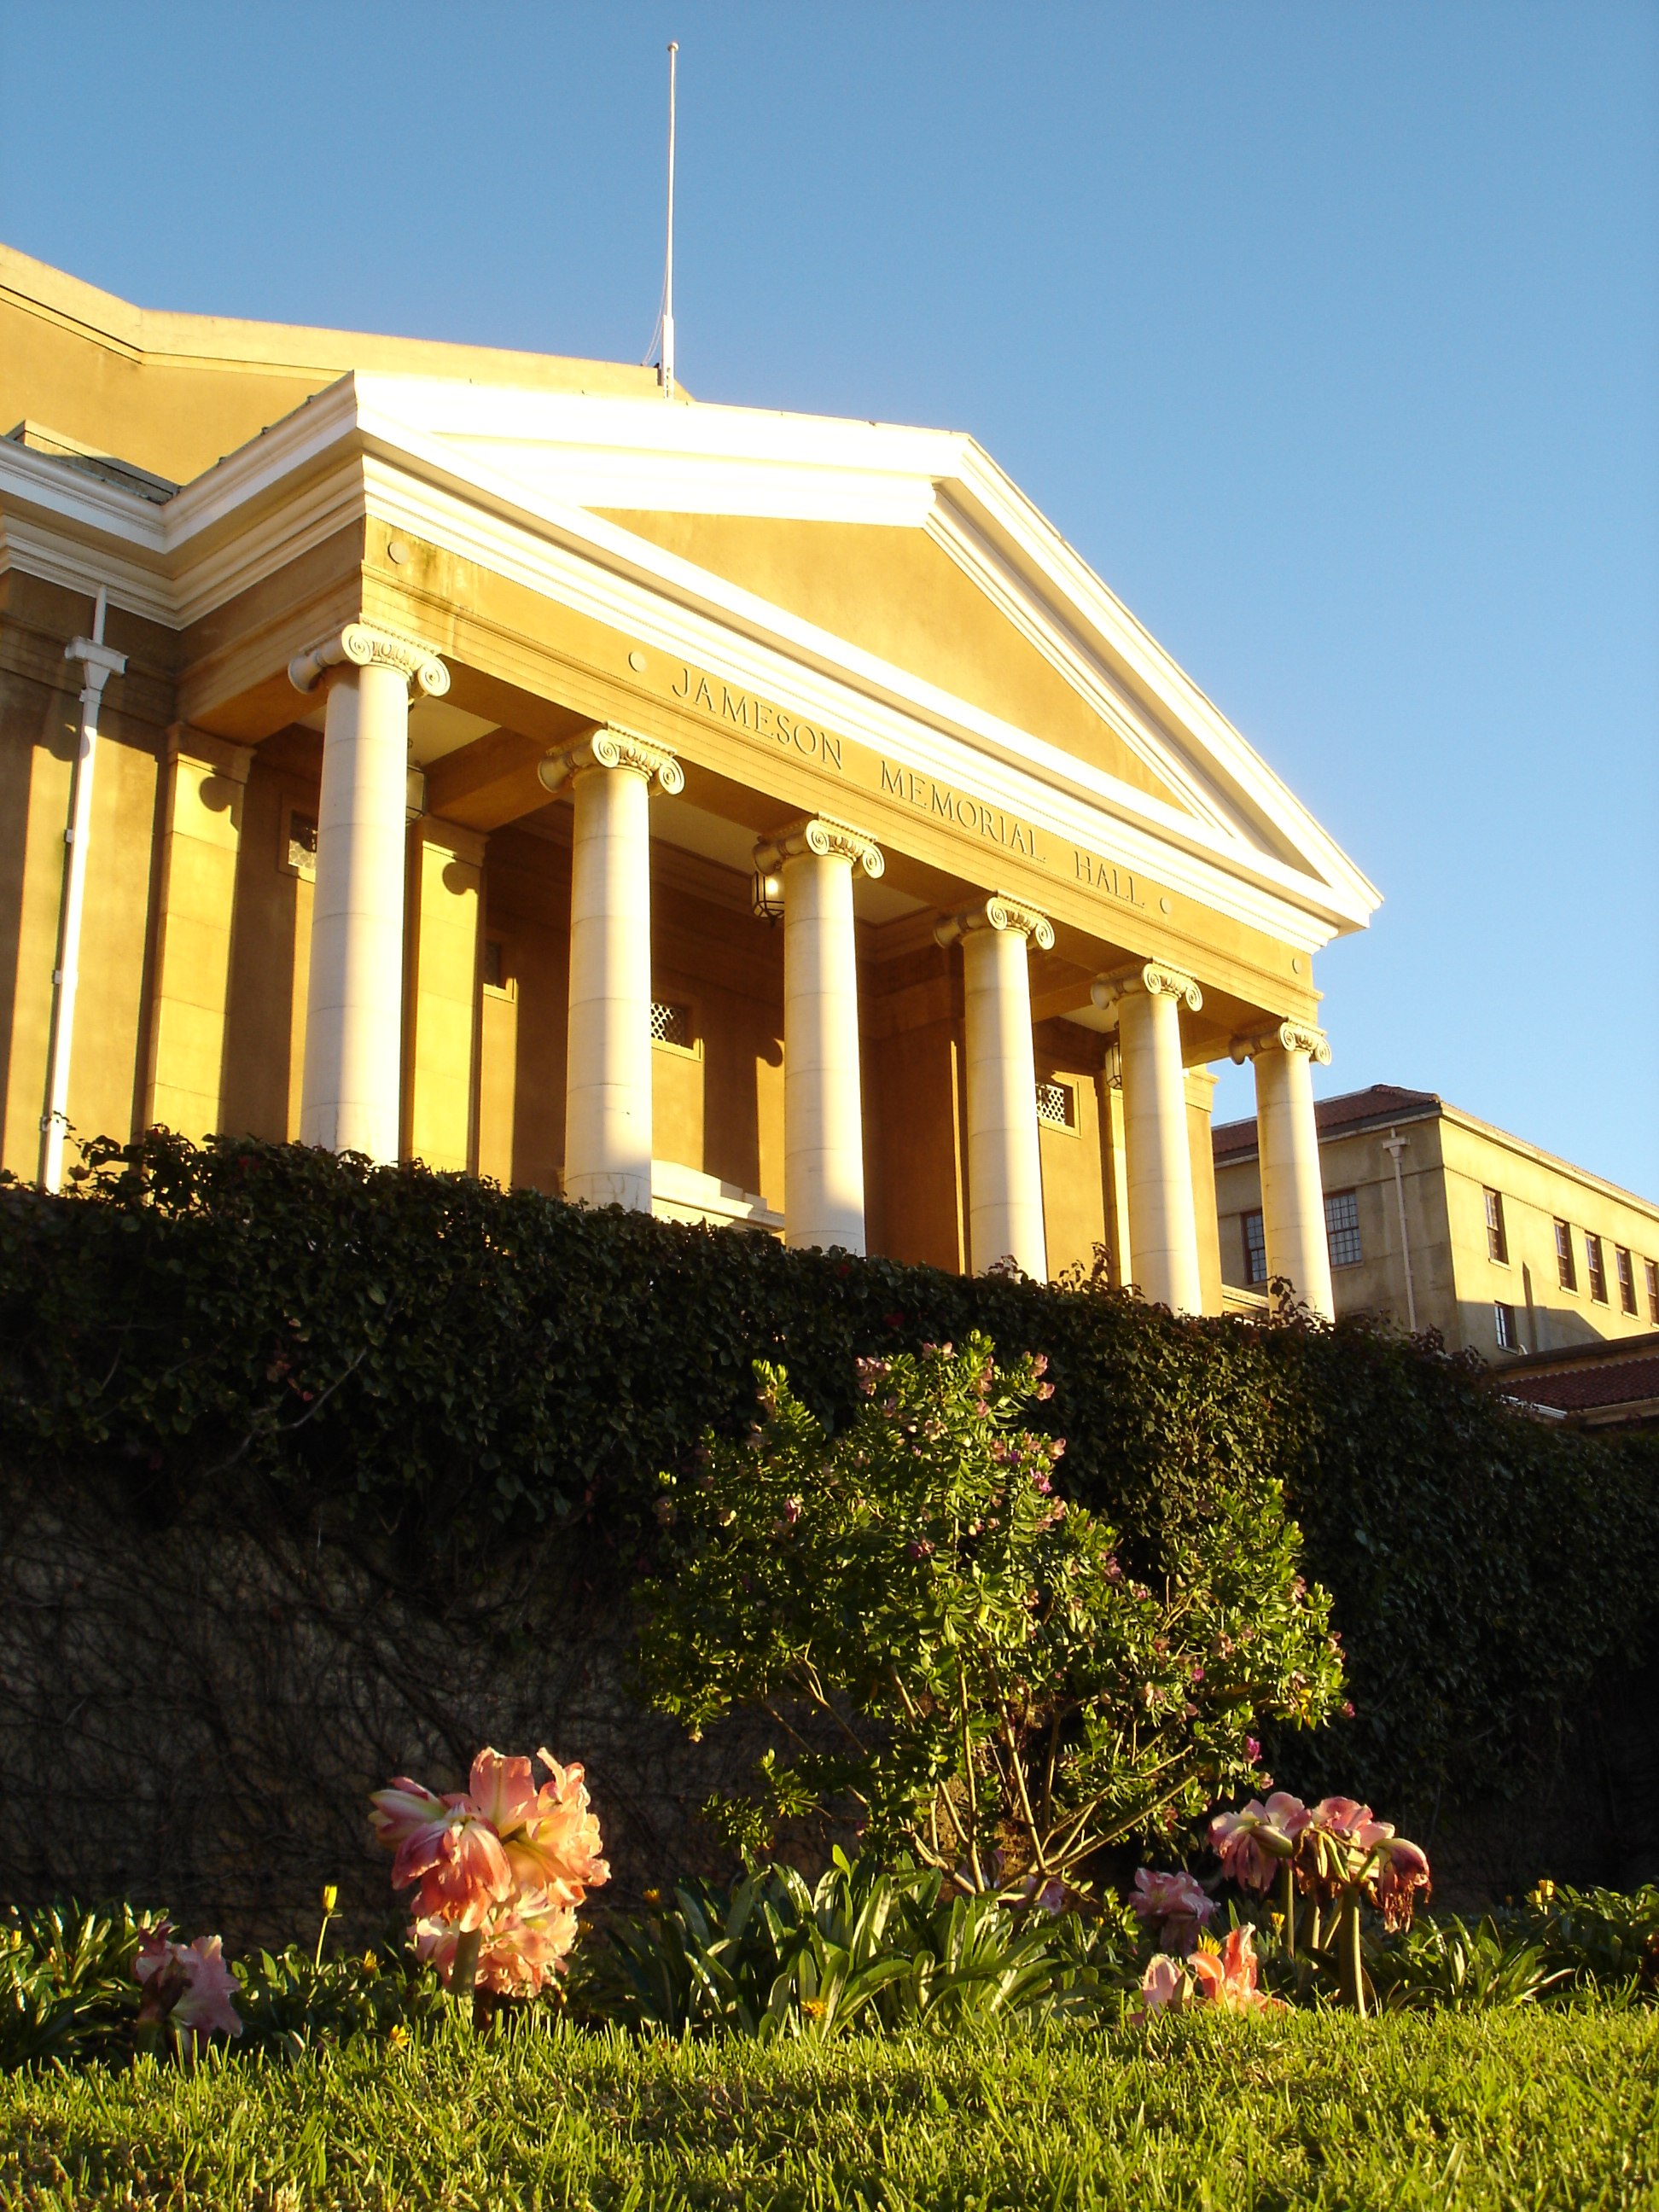 File:Jameson Hall - University of Cape Town.jpg - Wikimedia Commonsjameson town